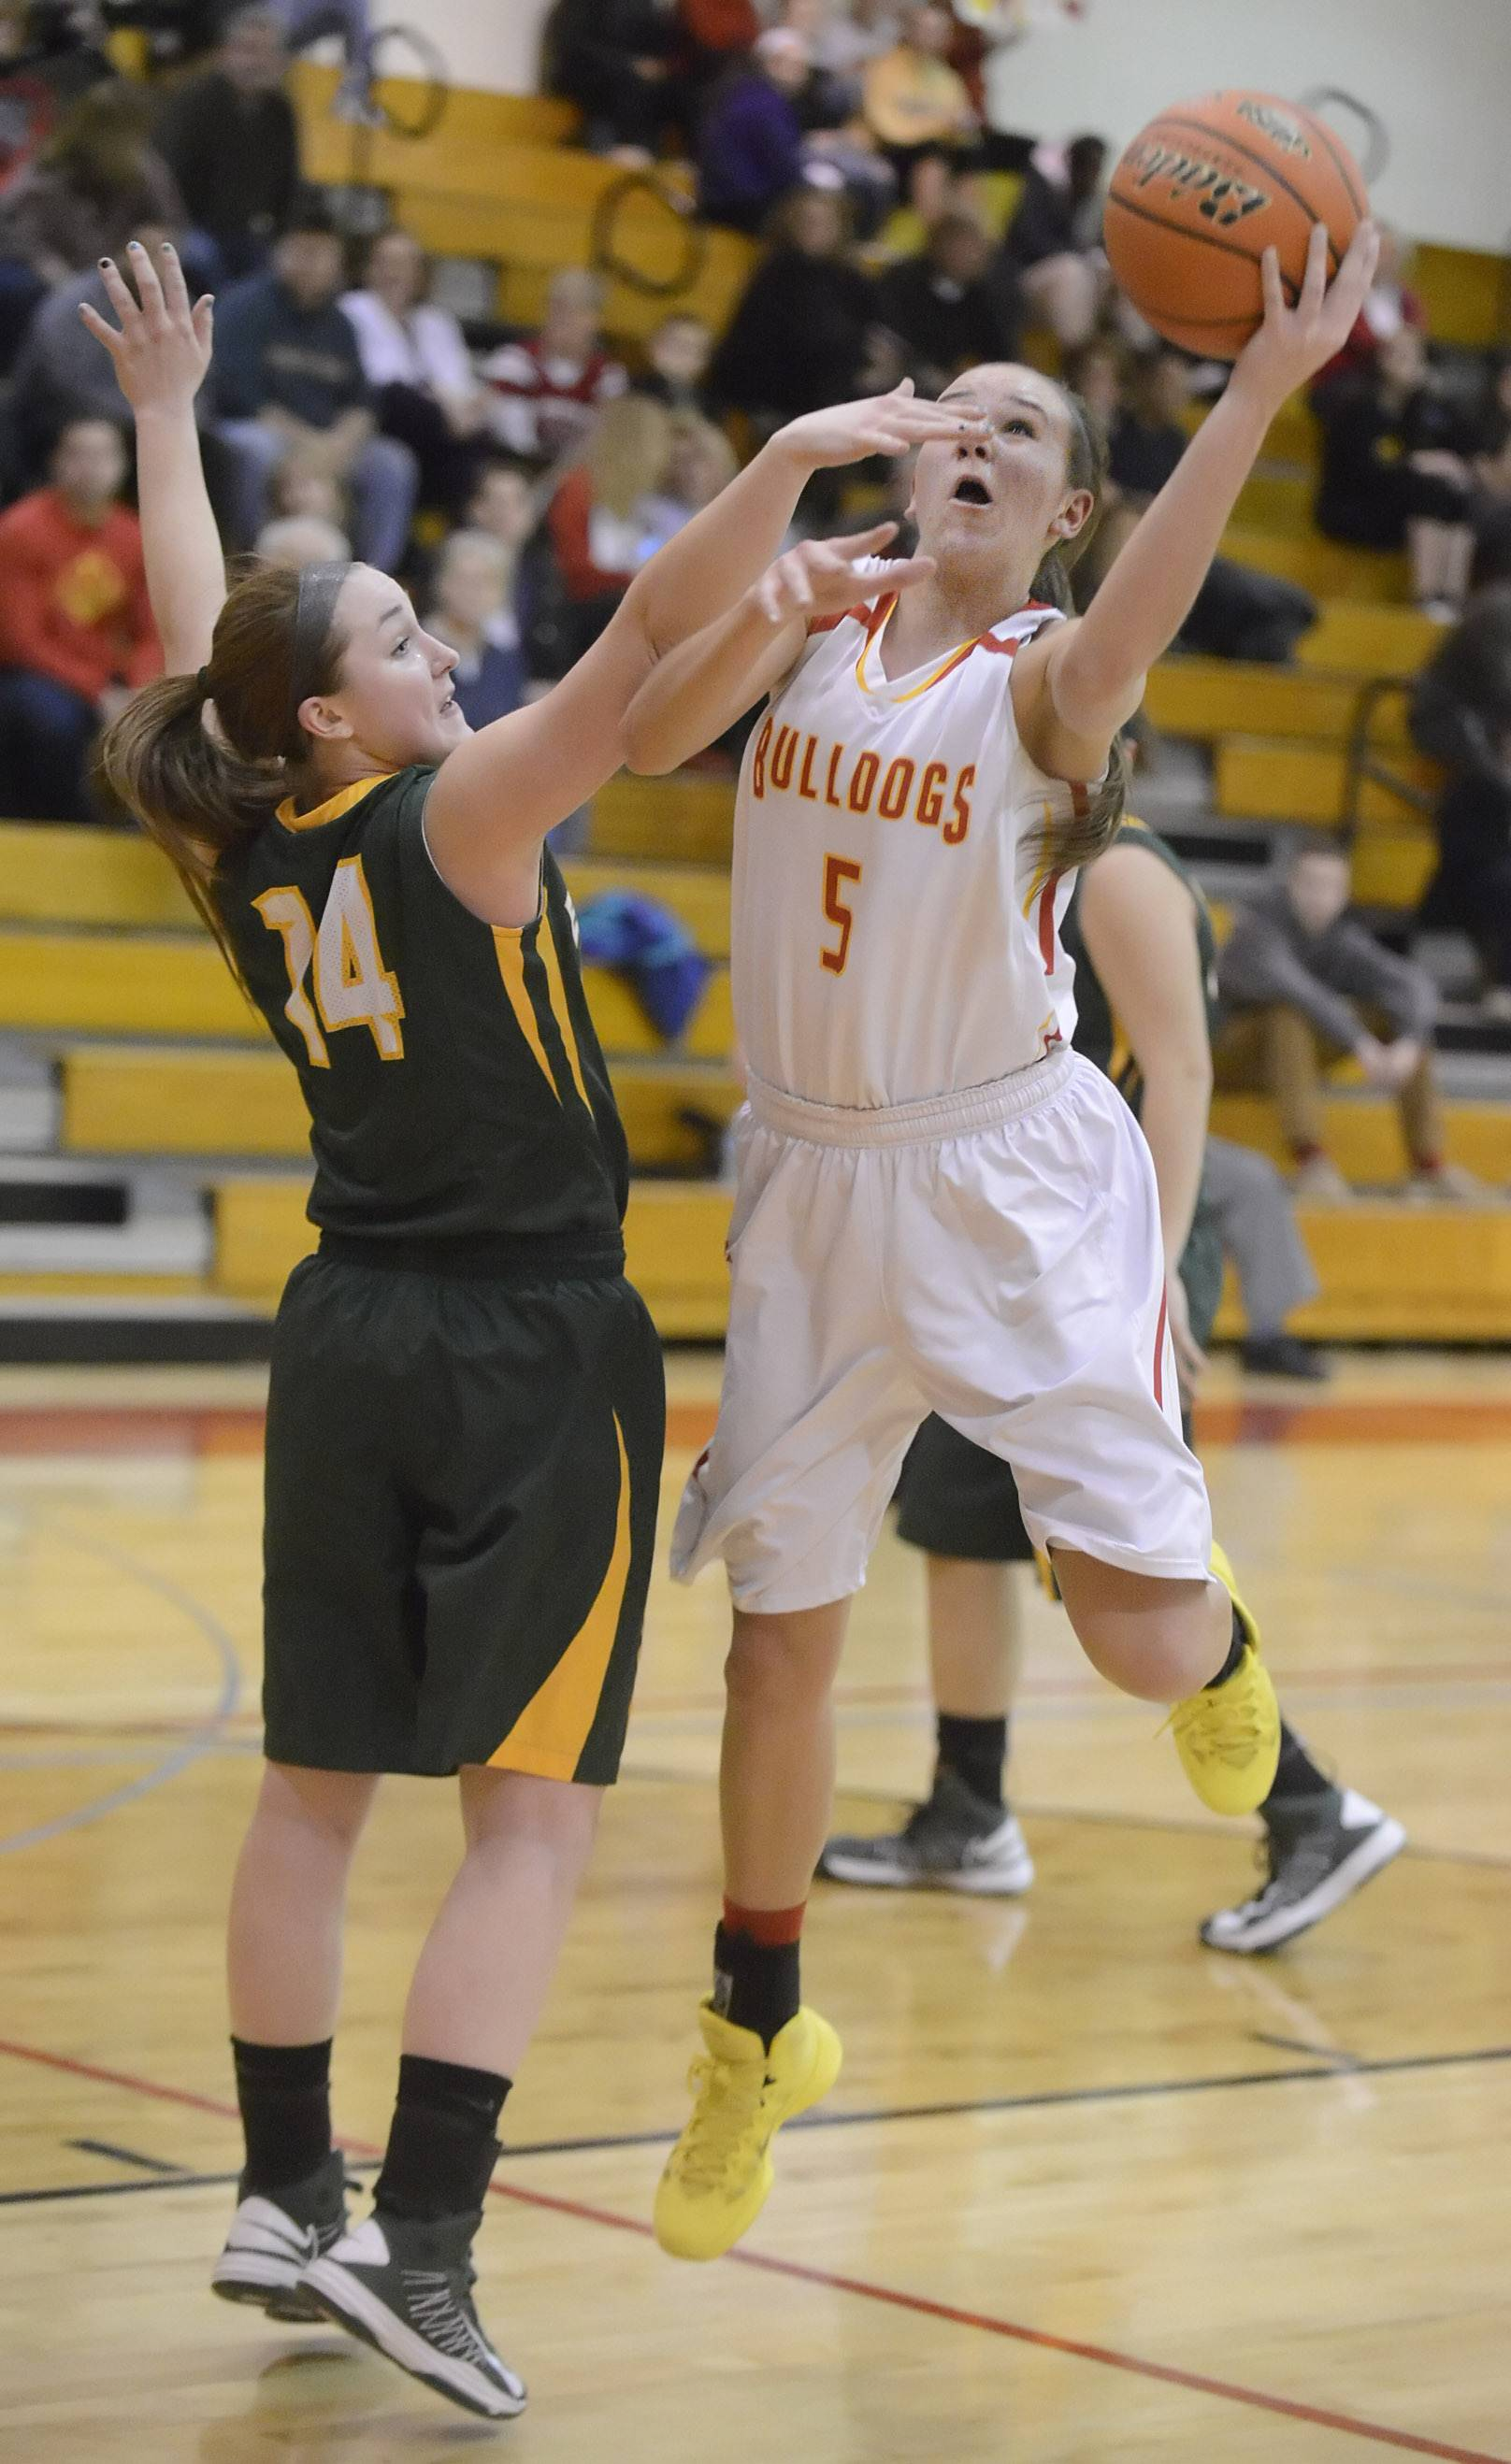 Batavia's Liza Fruendt shoots around a block by Elk Grove's Taylor Brown in the first quarter on Tuesday, February 18.